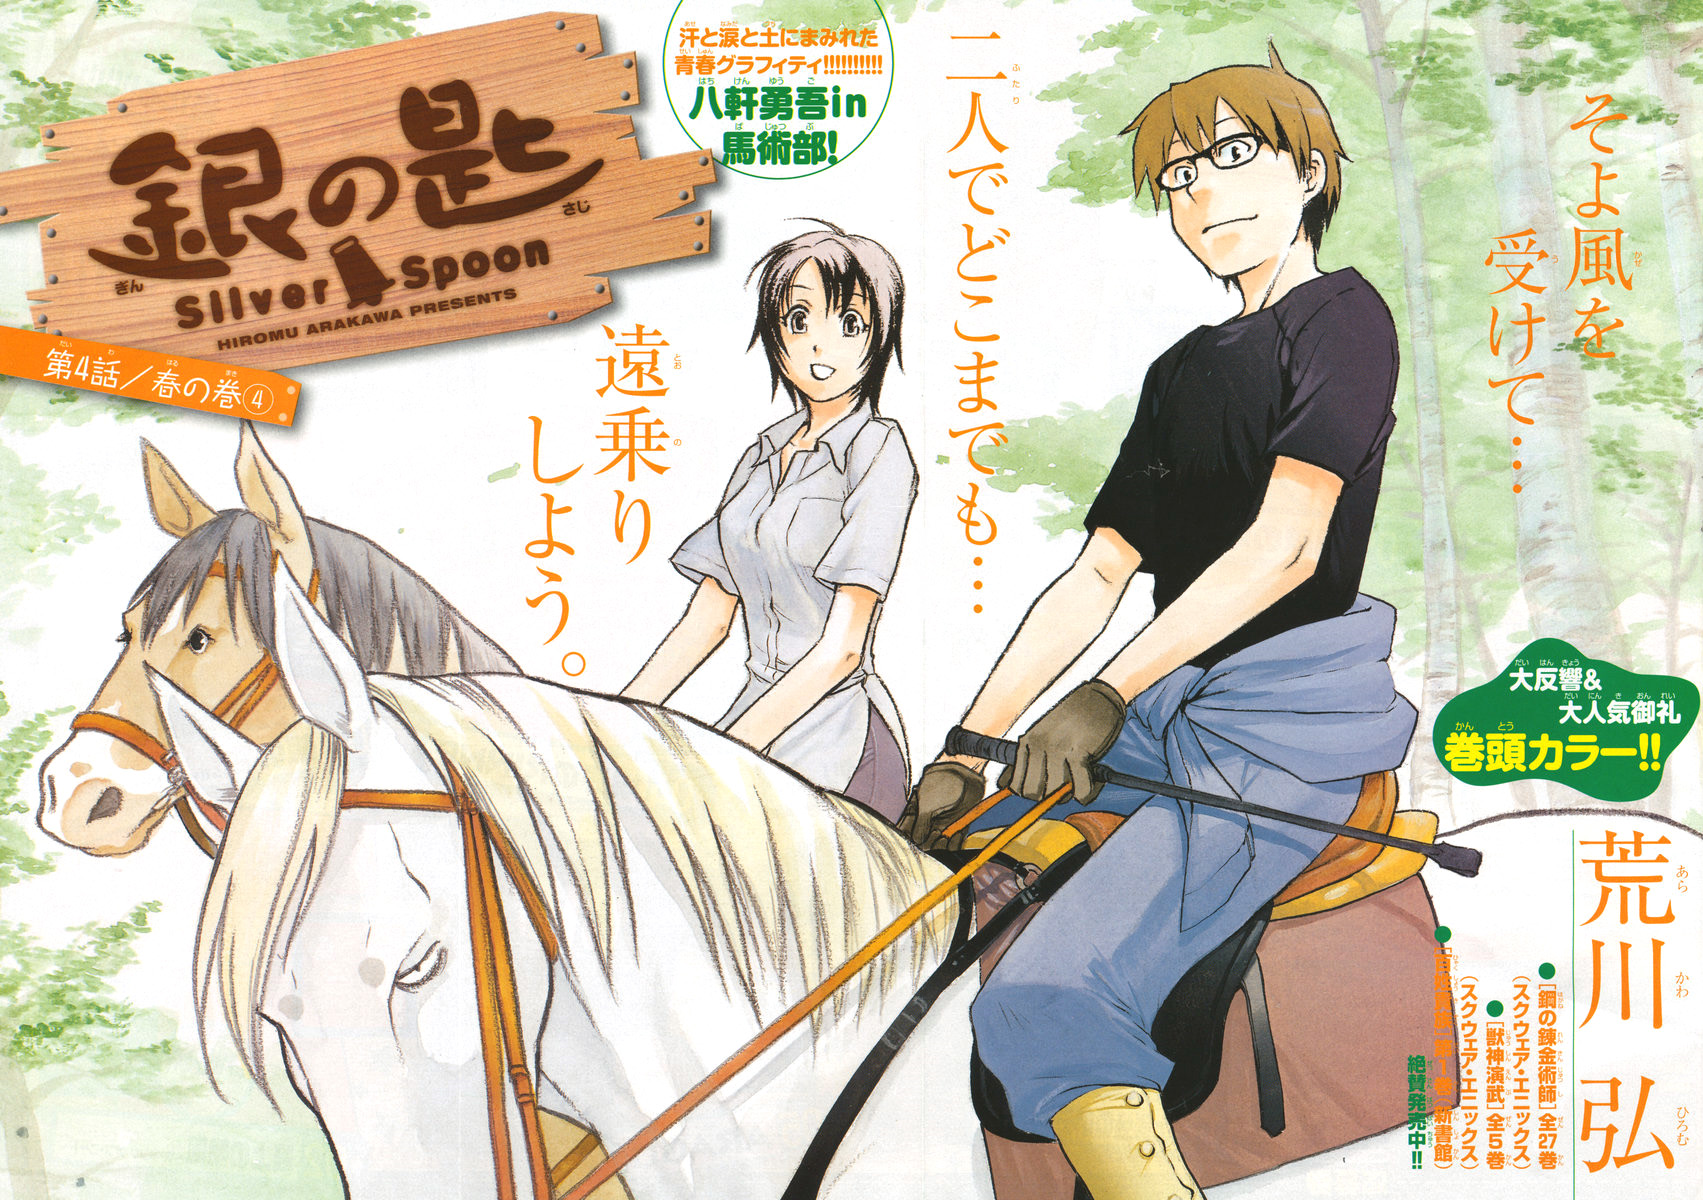 Silver Spoon entra nell'arco finale